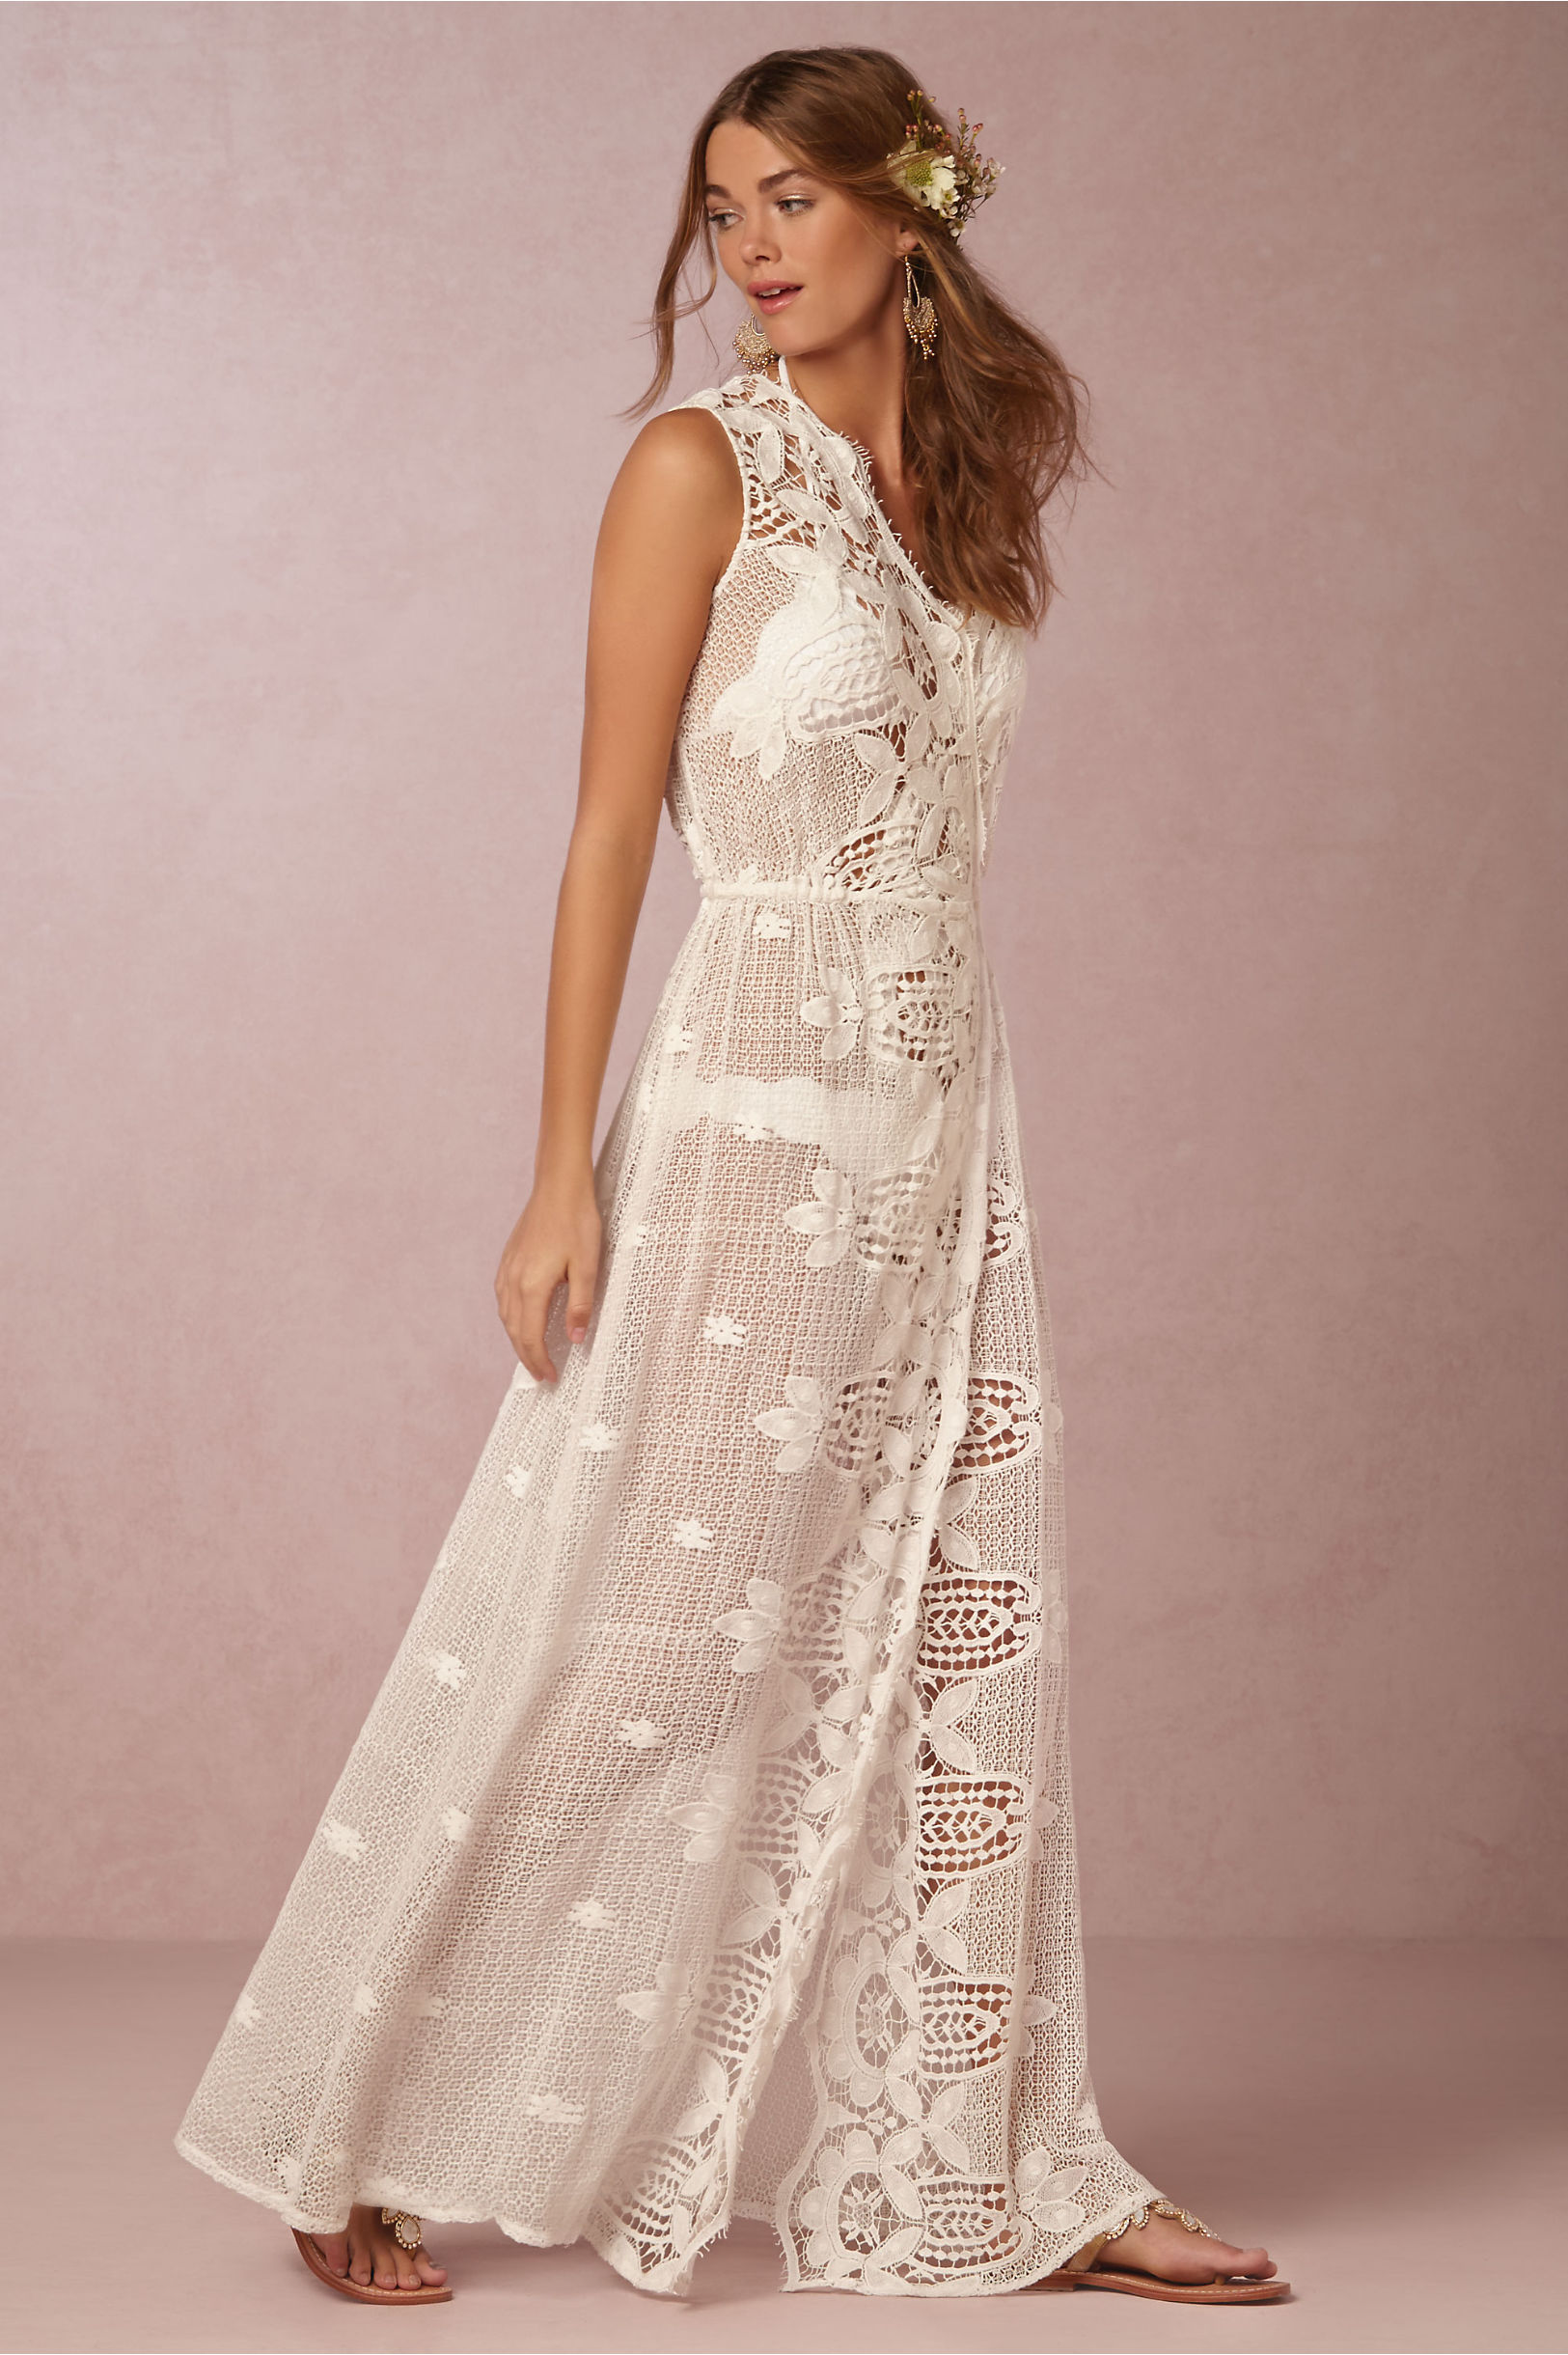 Bhldn llc 2015 terms of use privacy policy ca notice for Bra for wedding dress shopping